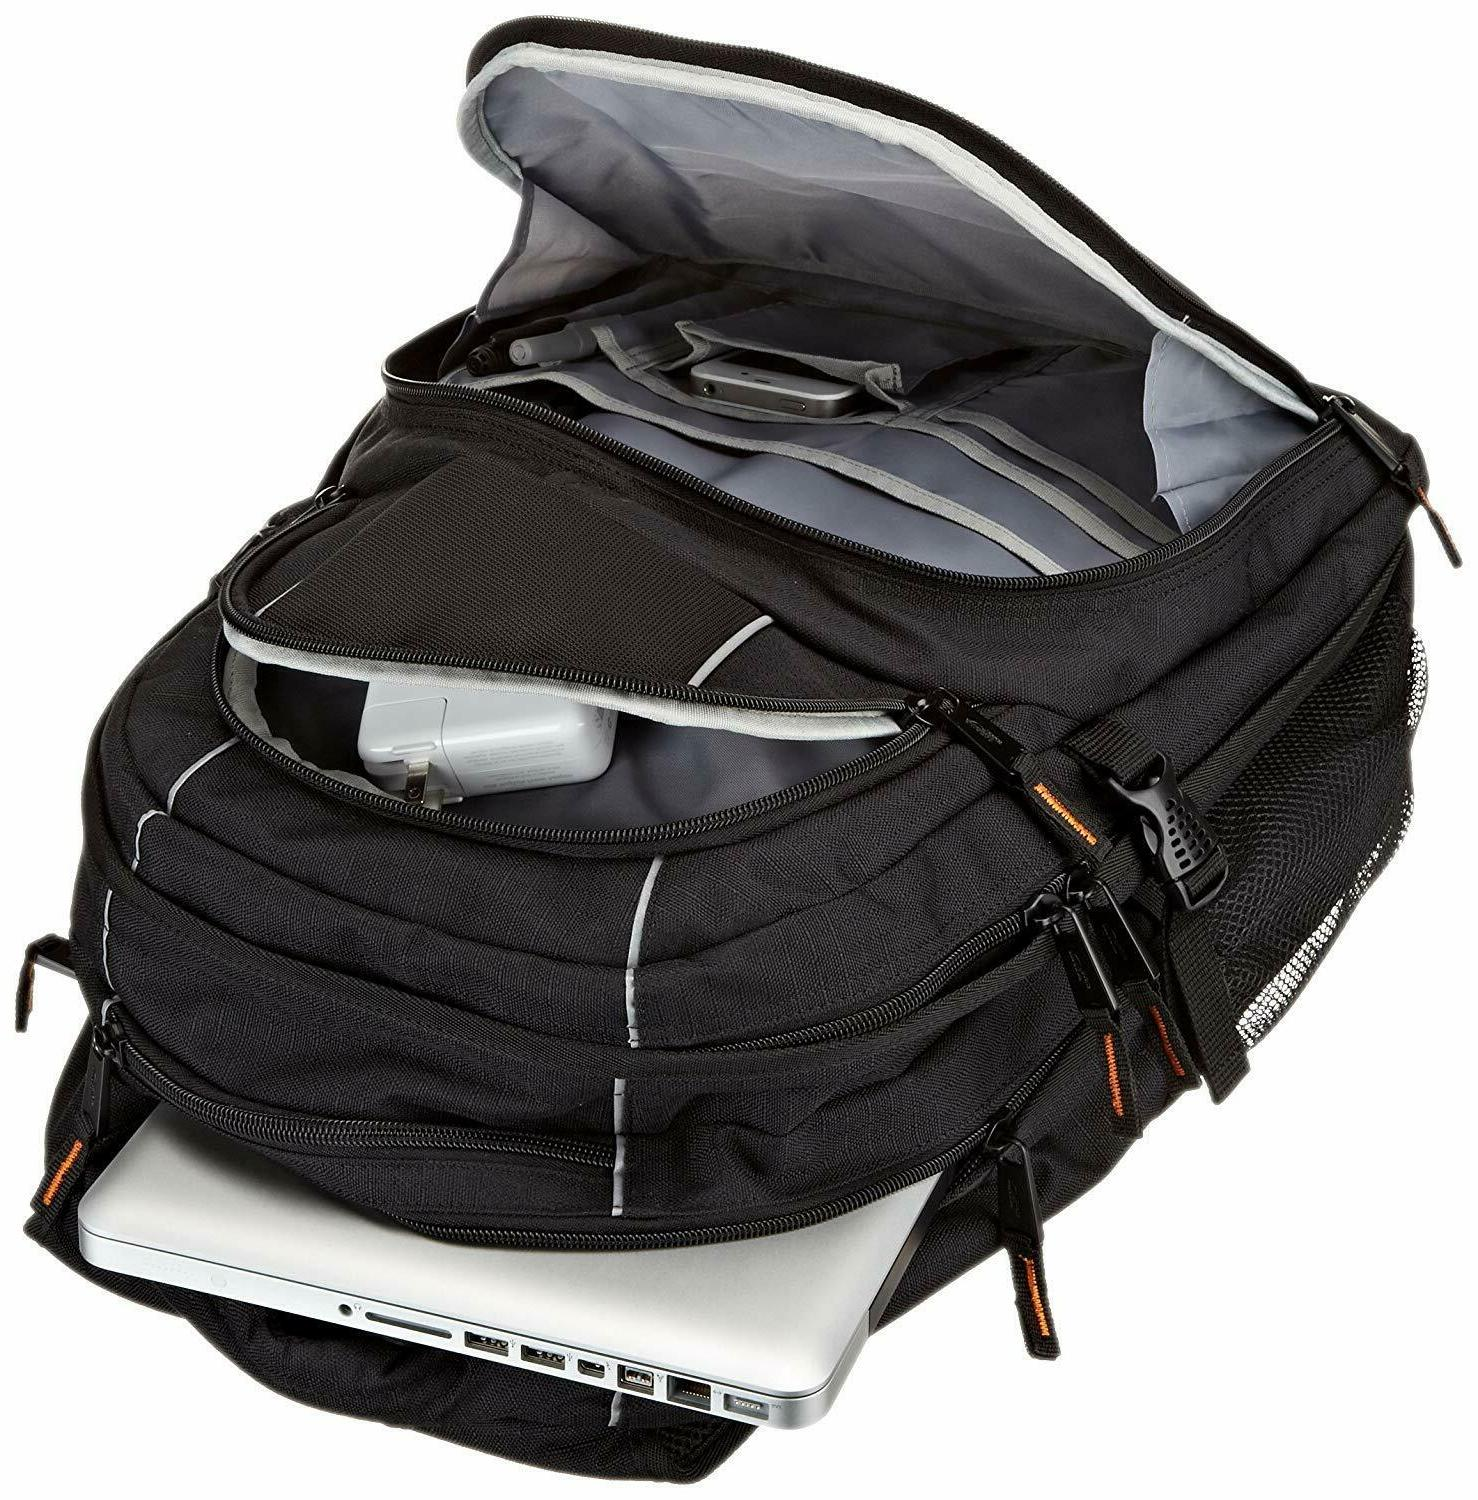 b5add7f45c0e7e AmazonBasics Backpack for Laptops up to 17-inches